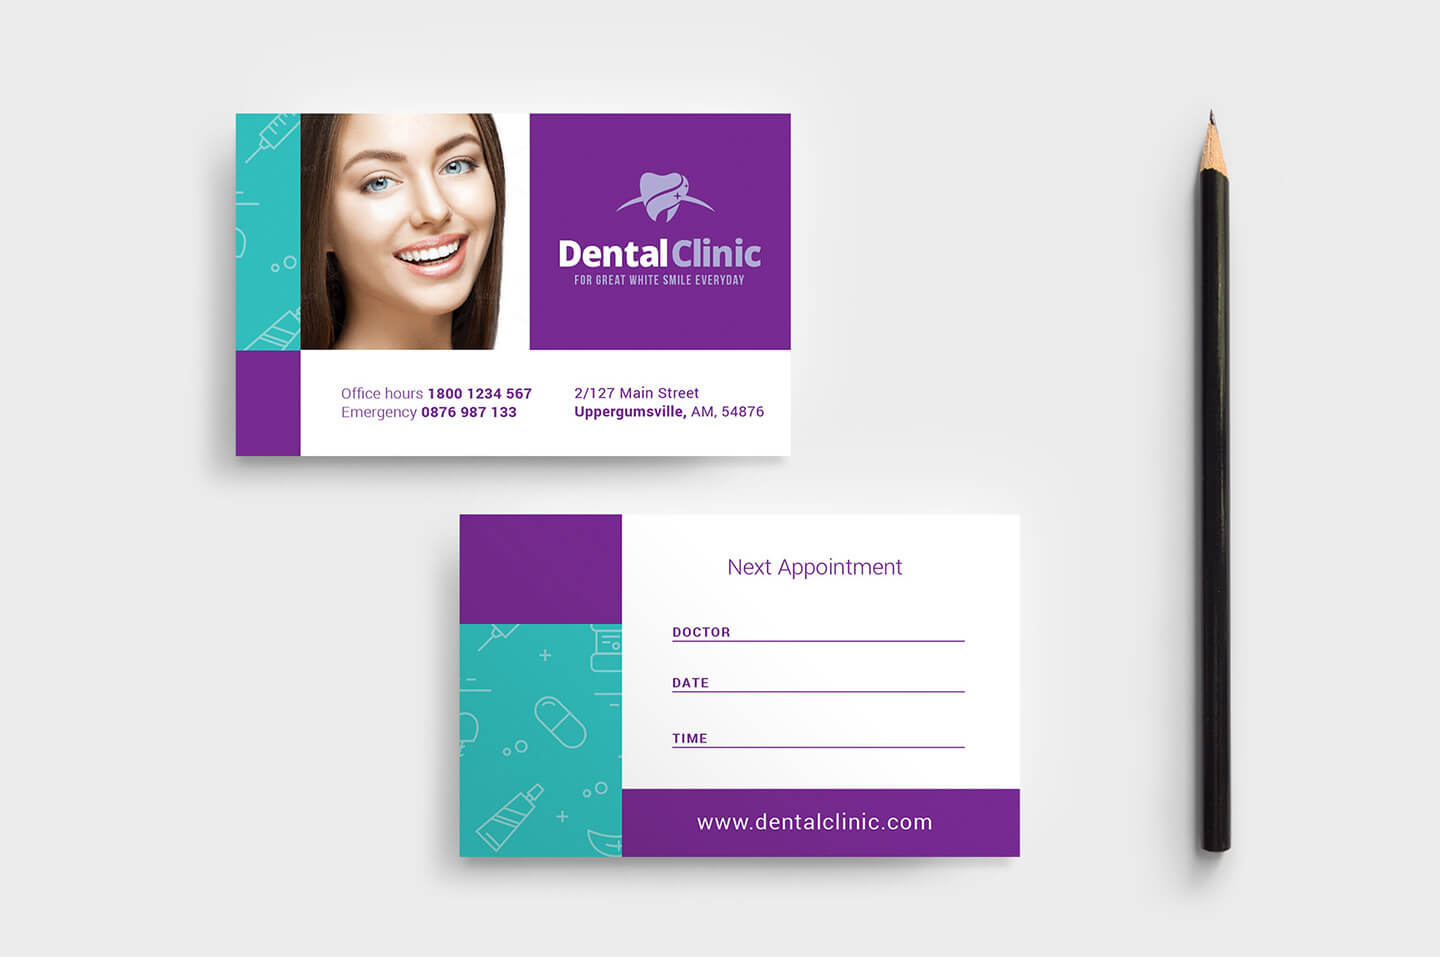 Dental Clinic Appointment Card Template In Psd, Ai & Vector Regarding Dentist Appointment Card Template